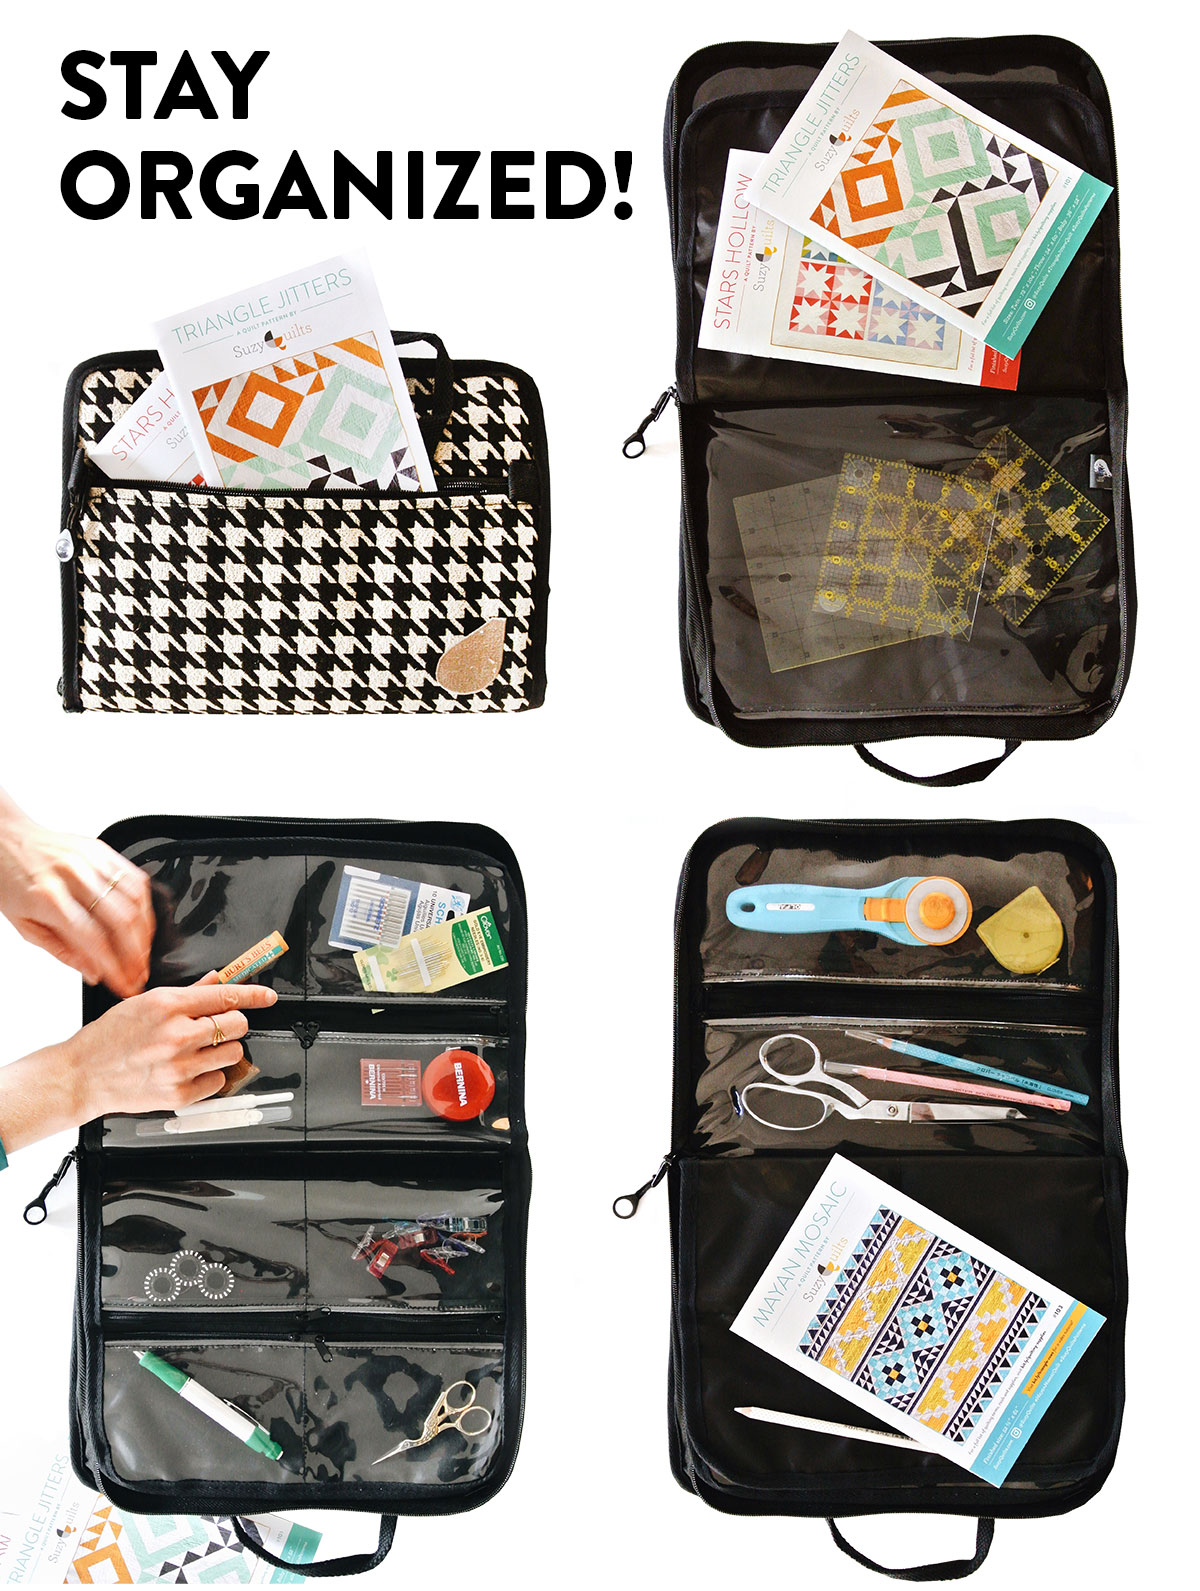 Stay Organized with Bluefig Sewing Bags! Stylish and Practical Sewing Bags | Suzy Quilts https://suzyquilts.com/bluefig-sewing-bags